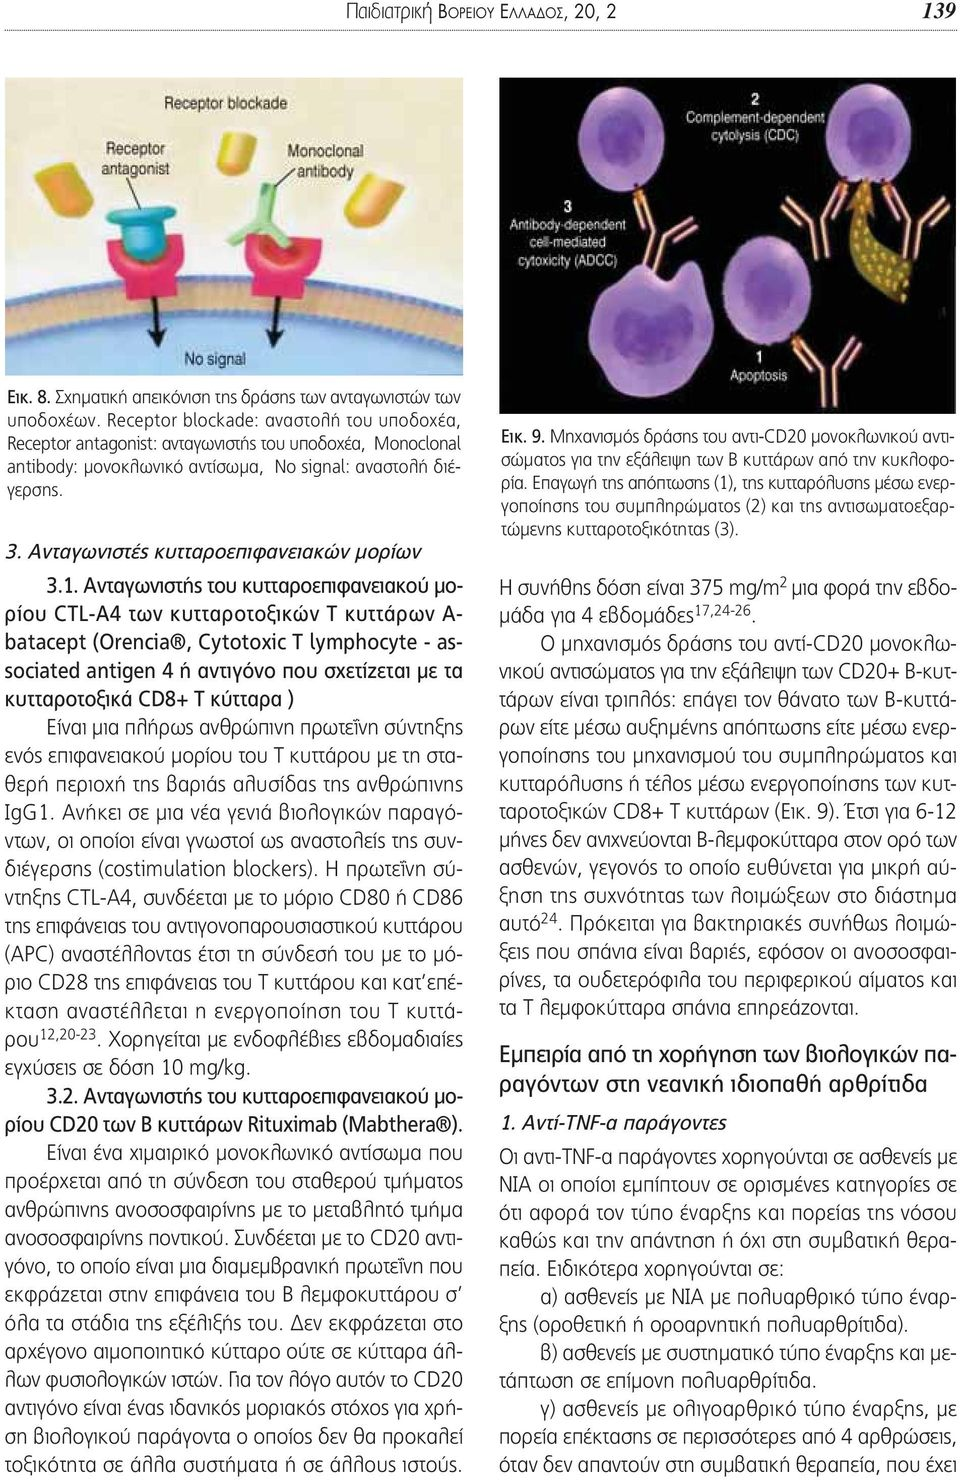 àë µàشêë ëâ ëë éâ appleشز à ش â قâ- éâ CTL-A4 ëà ëë éâëâضش مà ëë éà - batacept (Orencia, Cytotoxic T lymphocyte - associated antigen 4 àëشµfiàâ appleâ êî ë ë ش ق ë ëë éâëâضش CD8+ ëë é ) à ش قش